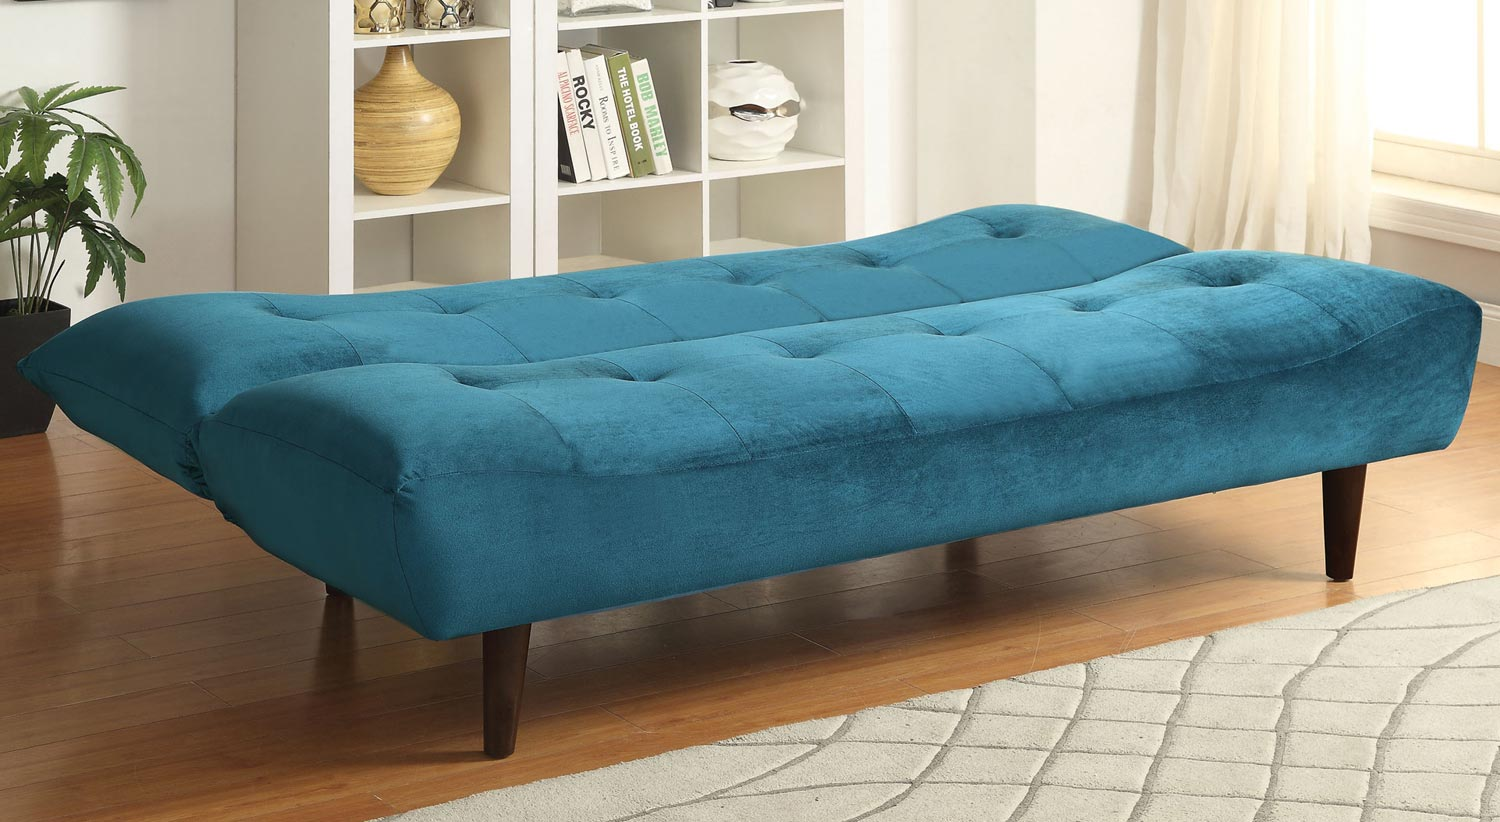 Coaster 500098 Sofa Bed - Teal